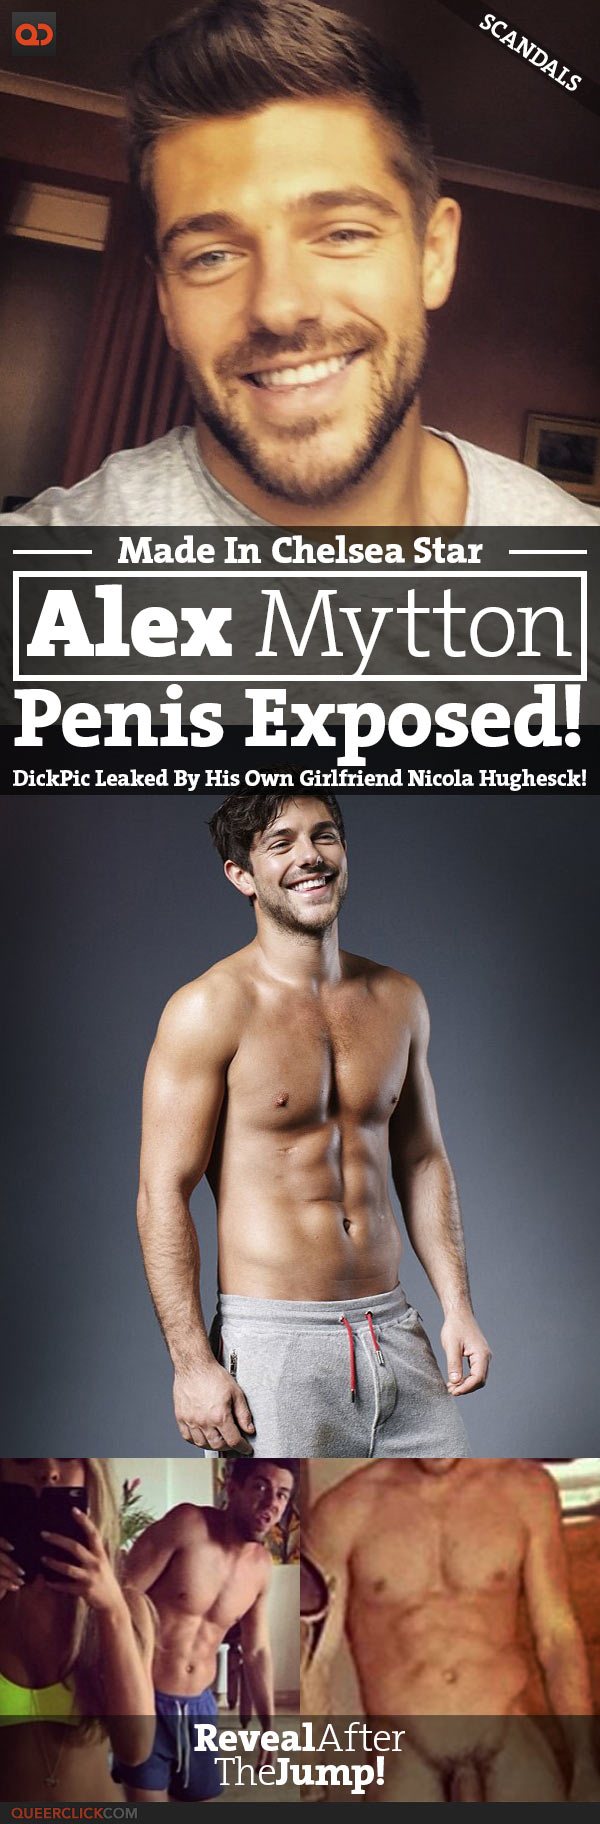 QC Scandals: Alex Mytton's Penis Exposed! Pic Leaked By His Own Girlfriend Nicola Hughes On Instagram